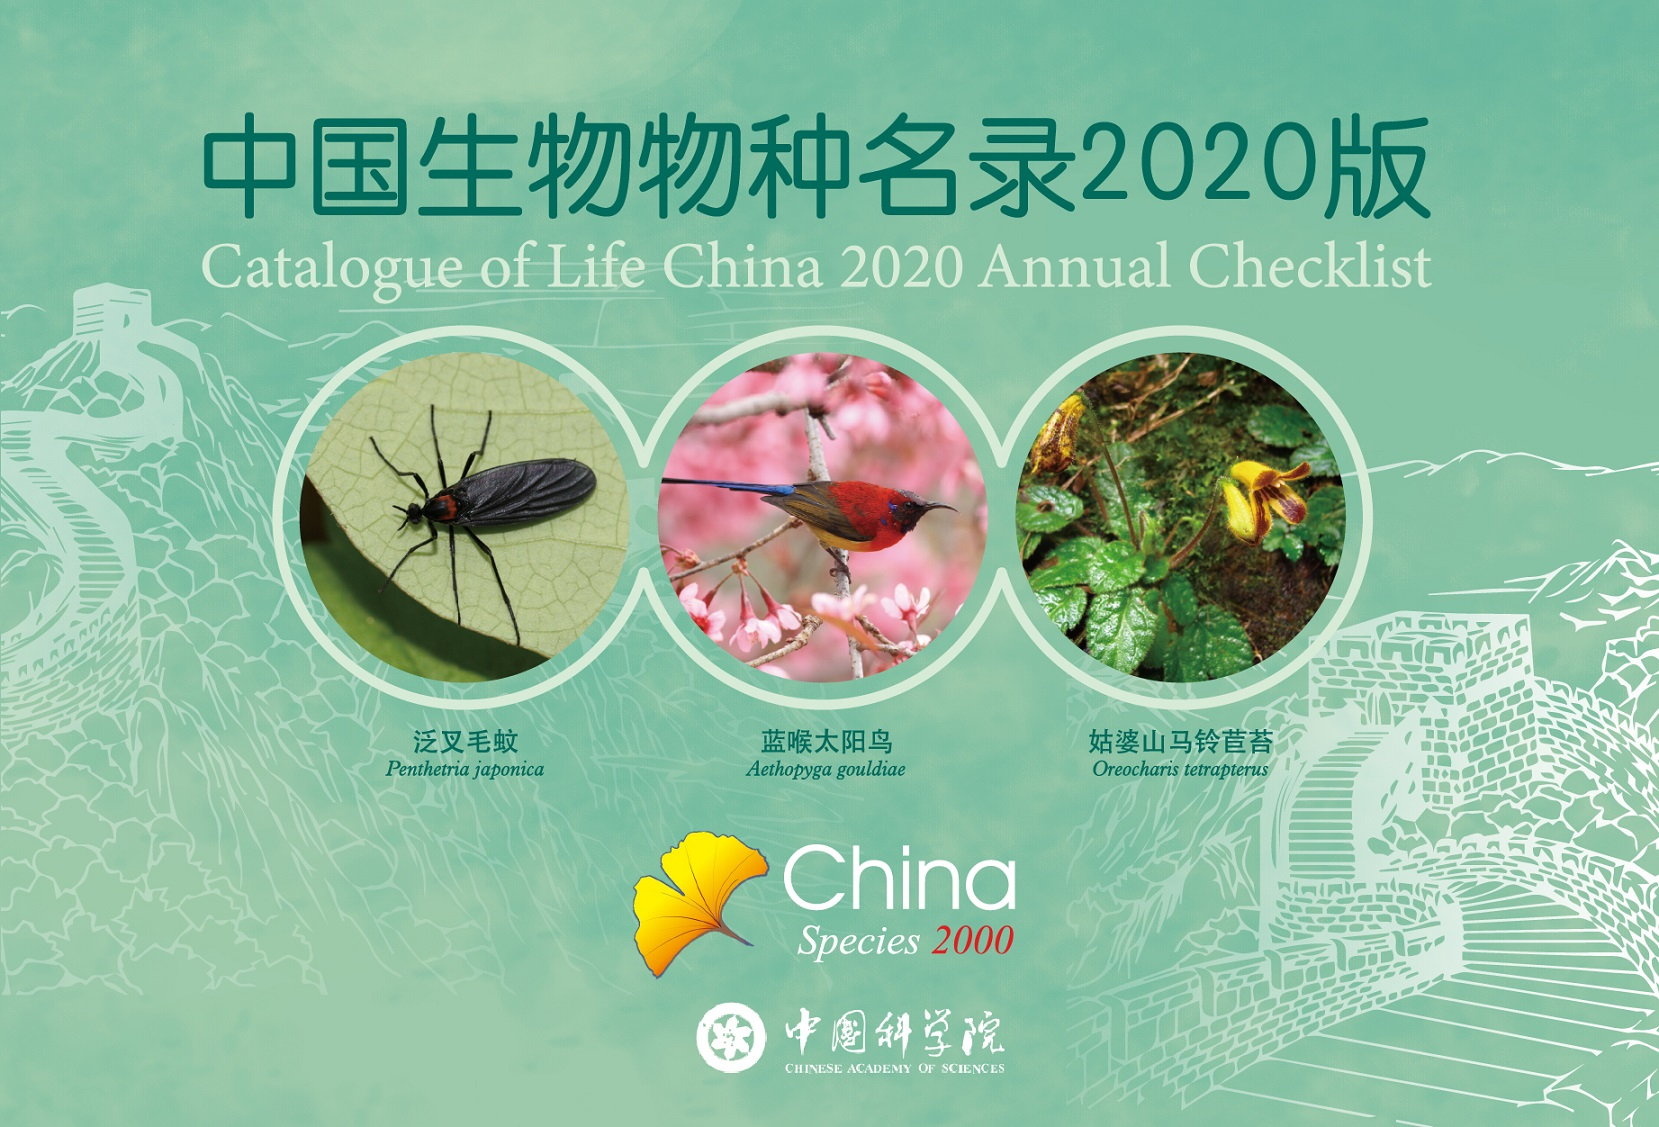 New species published by Gesneriad Conservation Center of China (GCCC): Oreocharis tetrapterus F.Wen, B.Pan & T.V.Do appear on the cover page of 2020 Annual Checklist of CoL-China